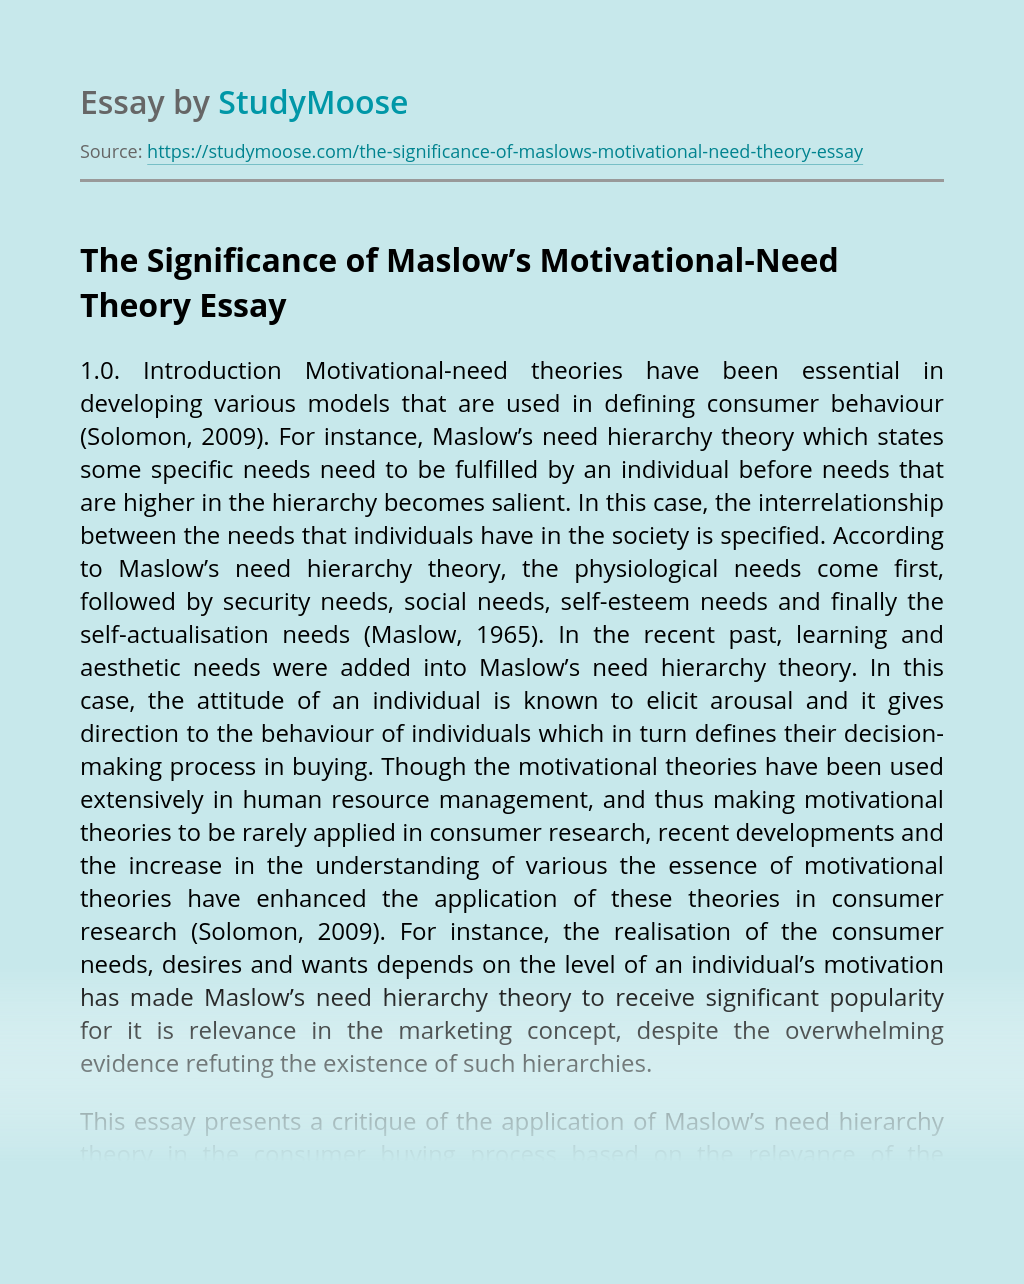 The Significance of Maslow's Motivational-Need Theory